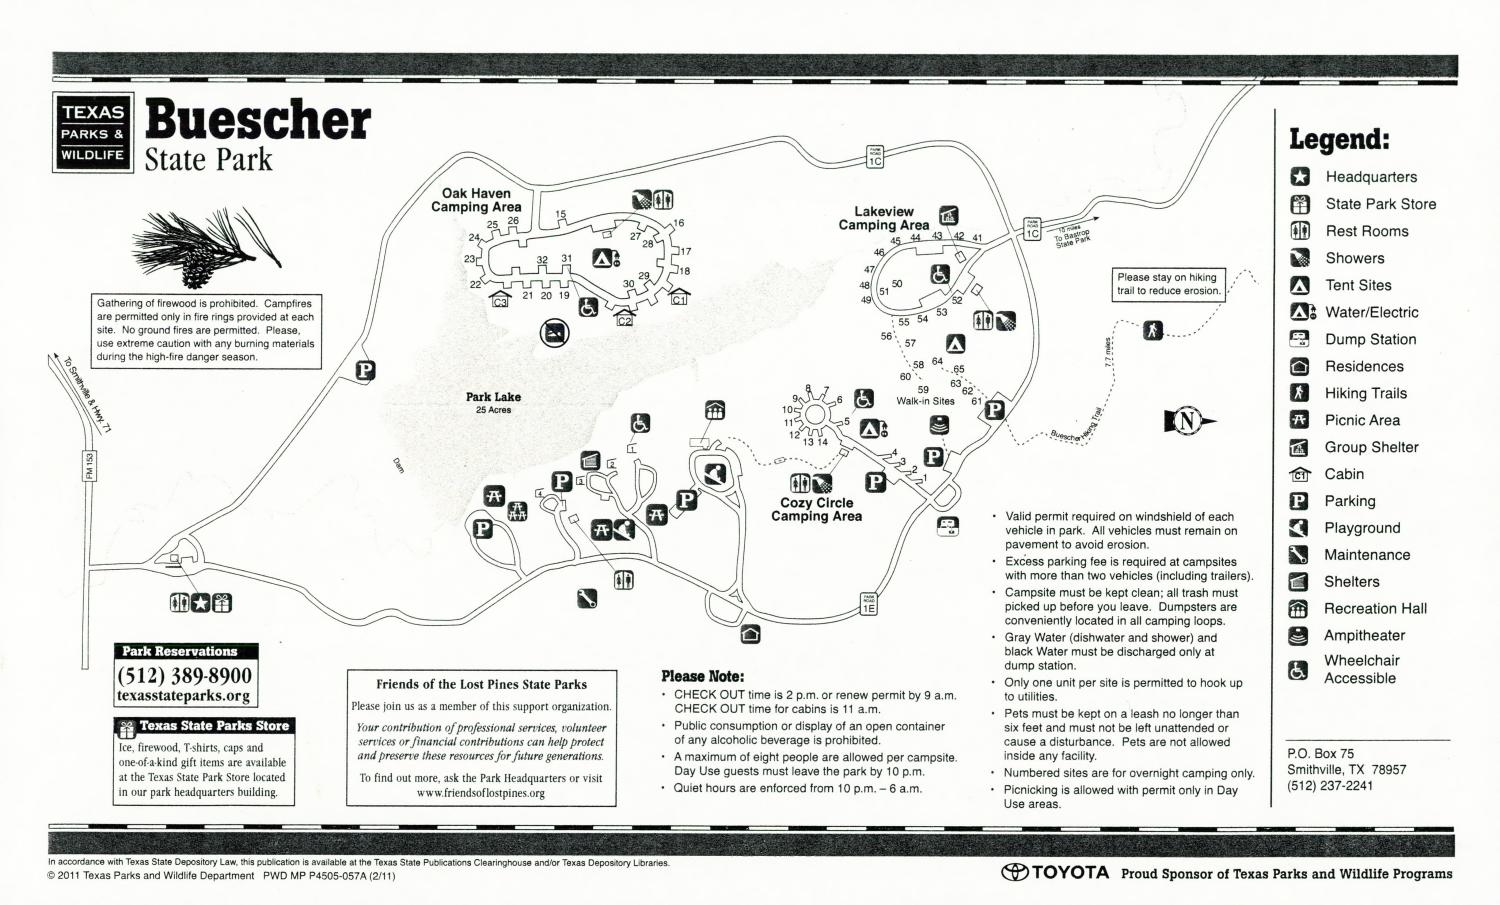 Buescher State Park, Map of the Buescher State Park outlining hiking trails and highlighting activities, facilities, and other features such as bathrooms, lodgings, water/electric, etc. It also contains general information for the park and for the Texas Parks and Wildlife Department.,